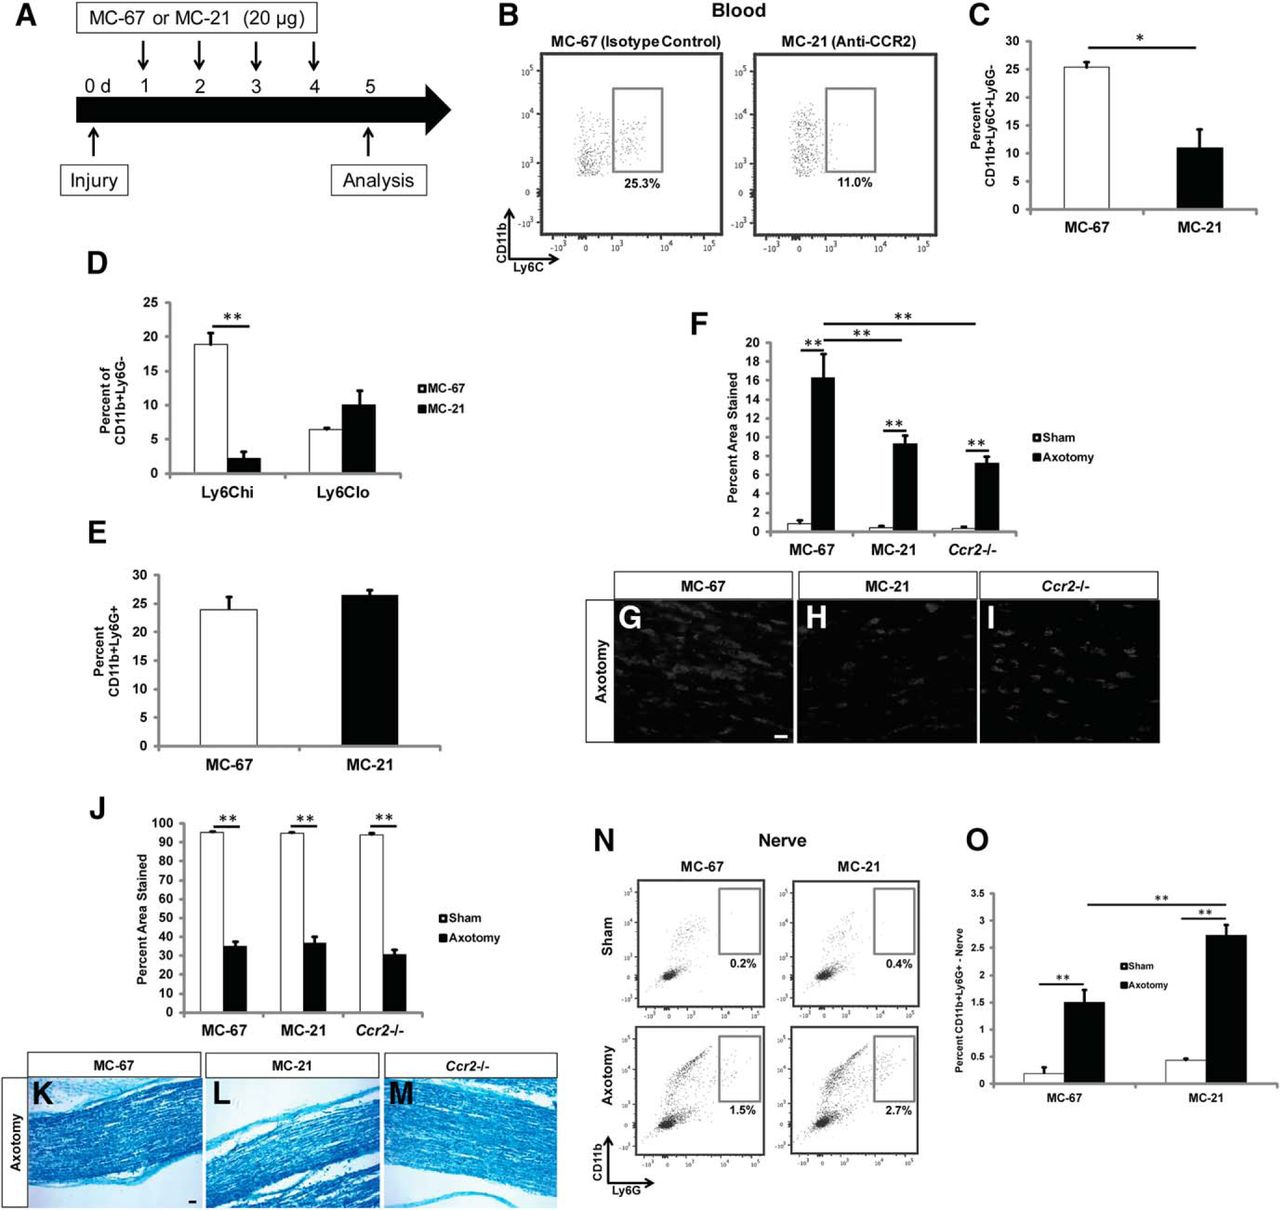 Neutrophils Are Critical for Myelin Removal in a Peripheral